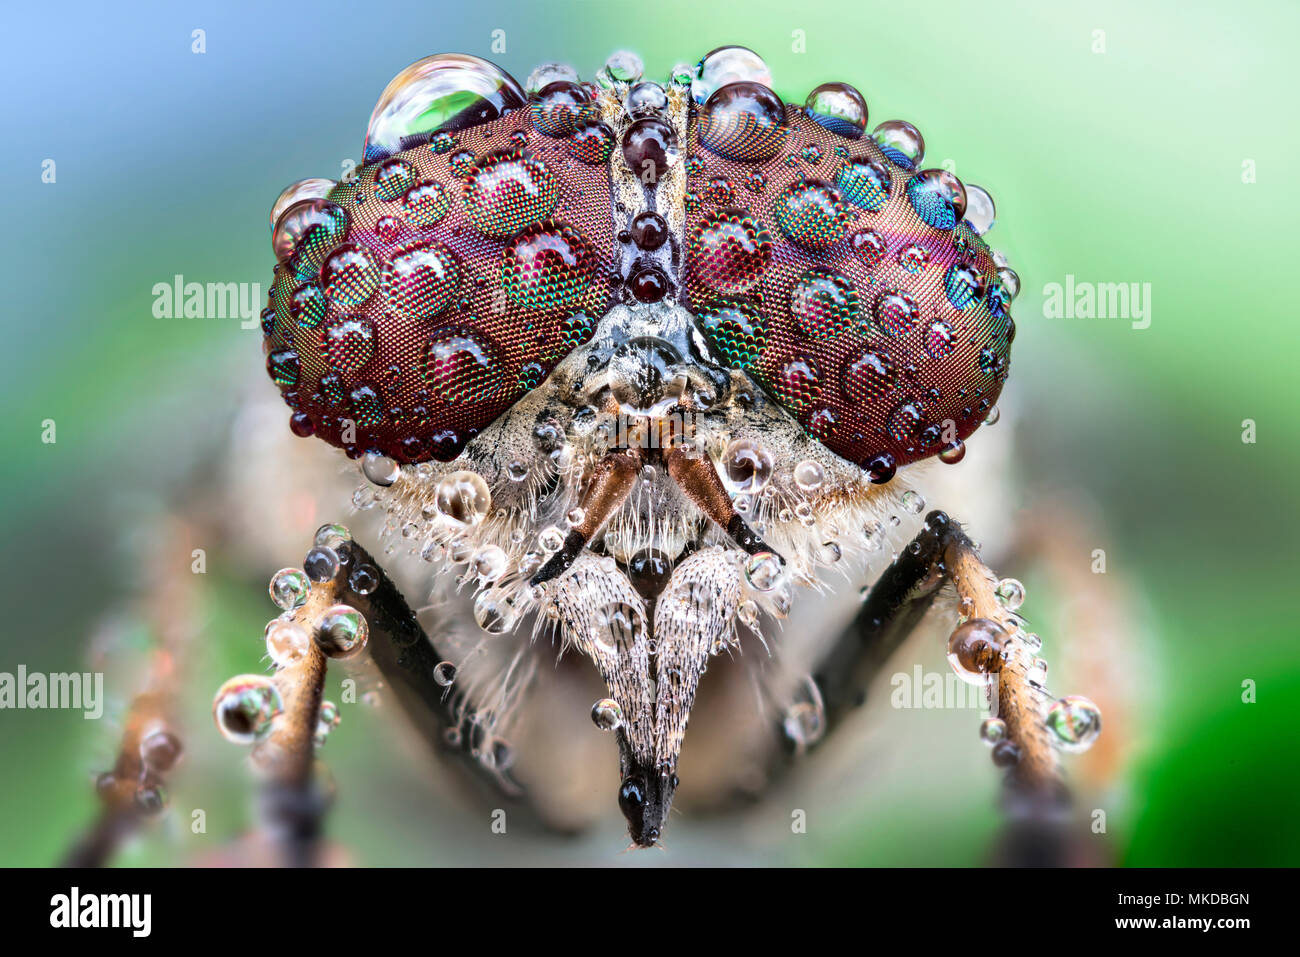 A fly with drops of dew on its eyes Focus stacking of 40 images - Stock Image